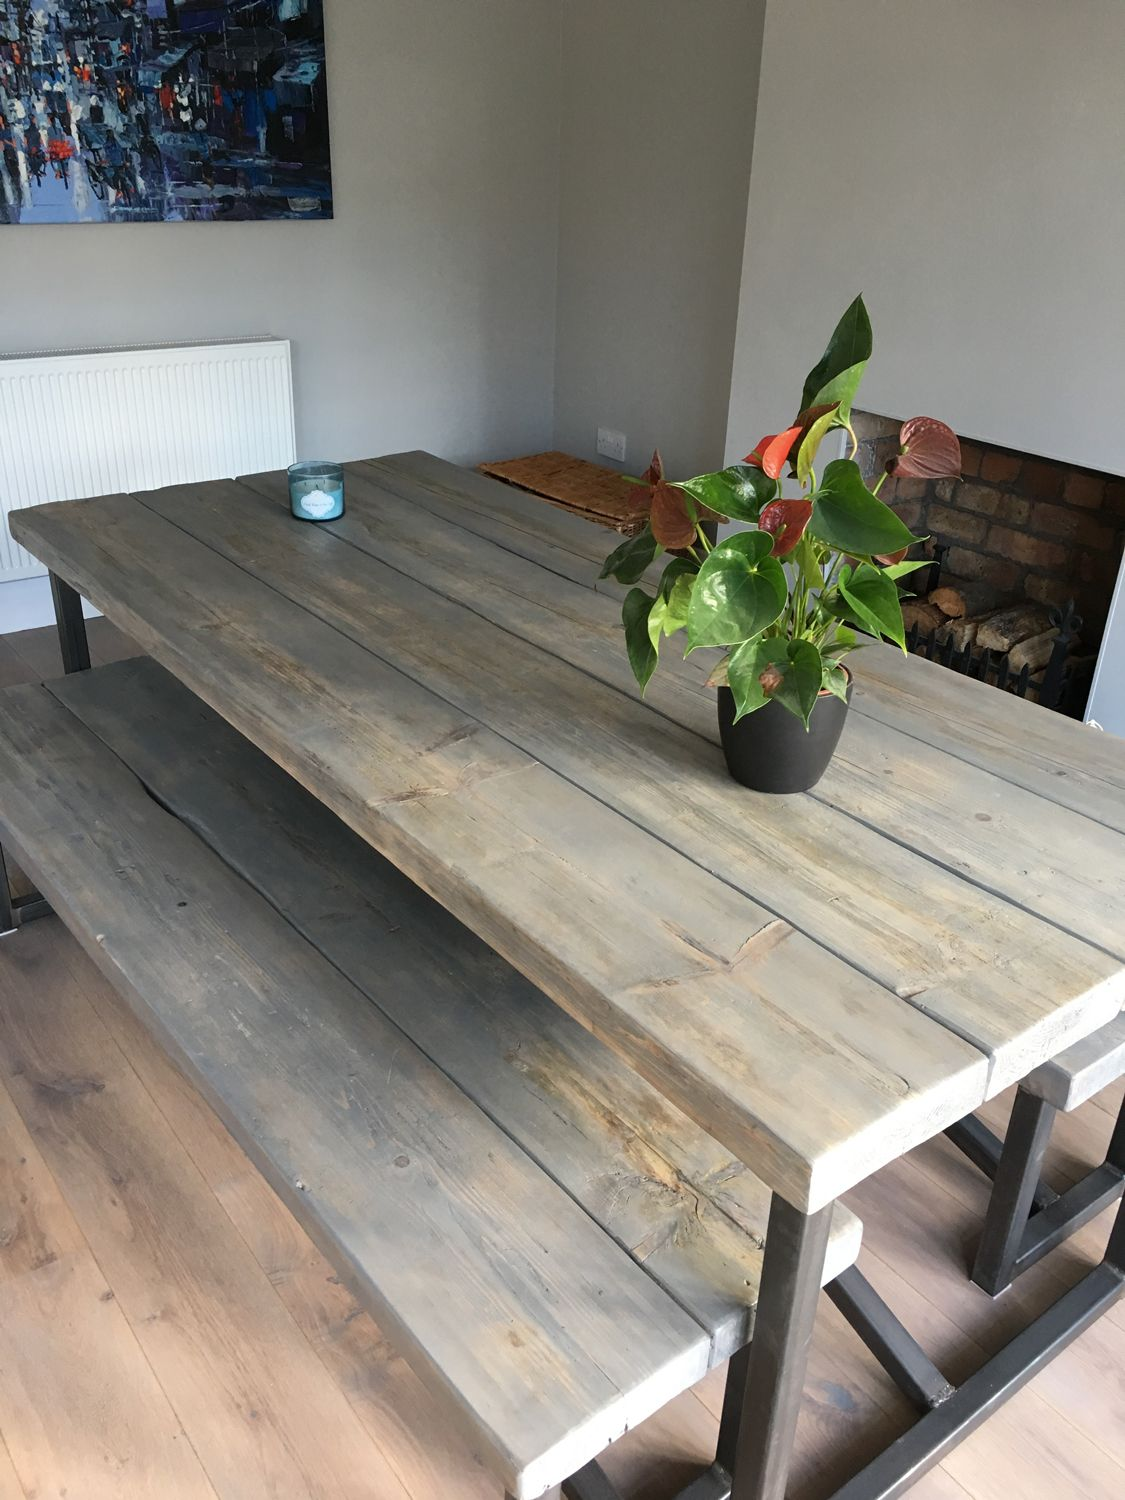 Industrial Style Reclaimed Wood Grey Washed Dining Table And Benches Www Reclaimedbespoke Co Uk Metal Dining Room Table Dining Table Wood Dining Table